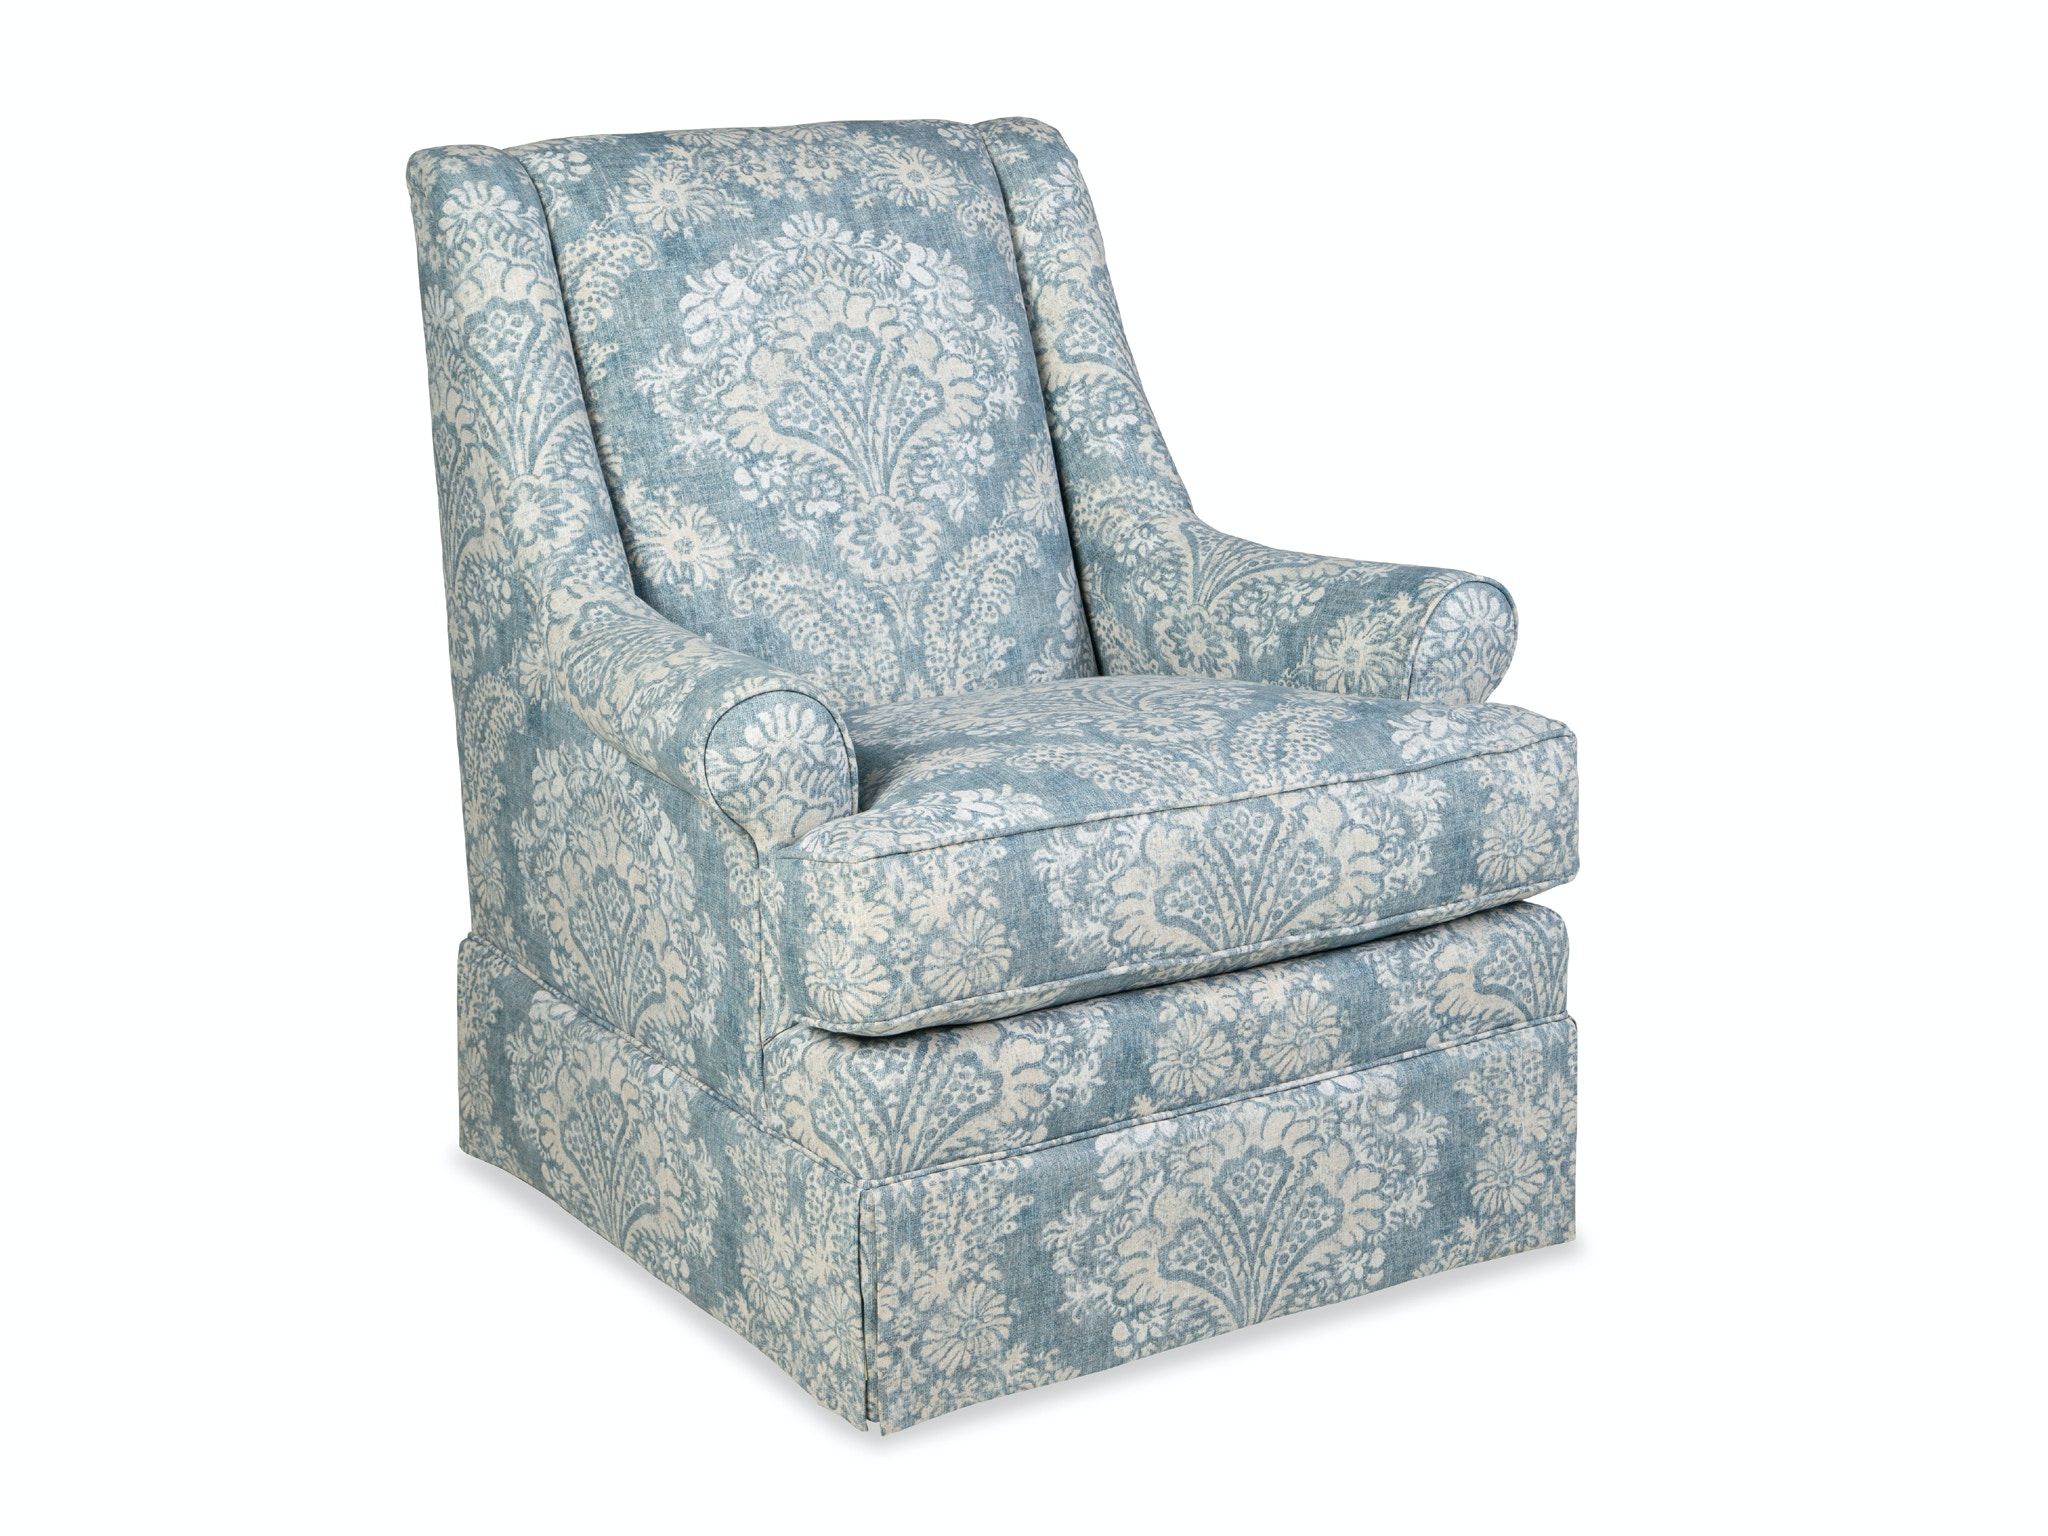 swivel chair in living room cover hire north brisbane paula deen by craftmaster p042910bdsc